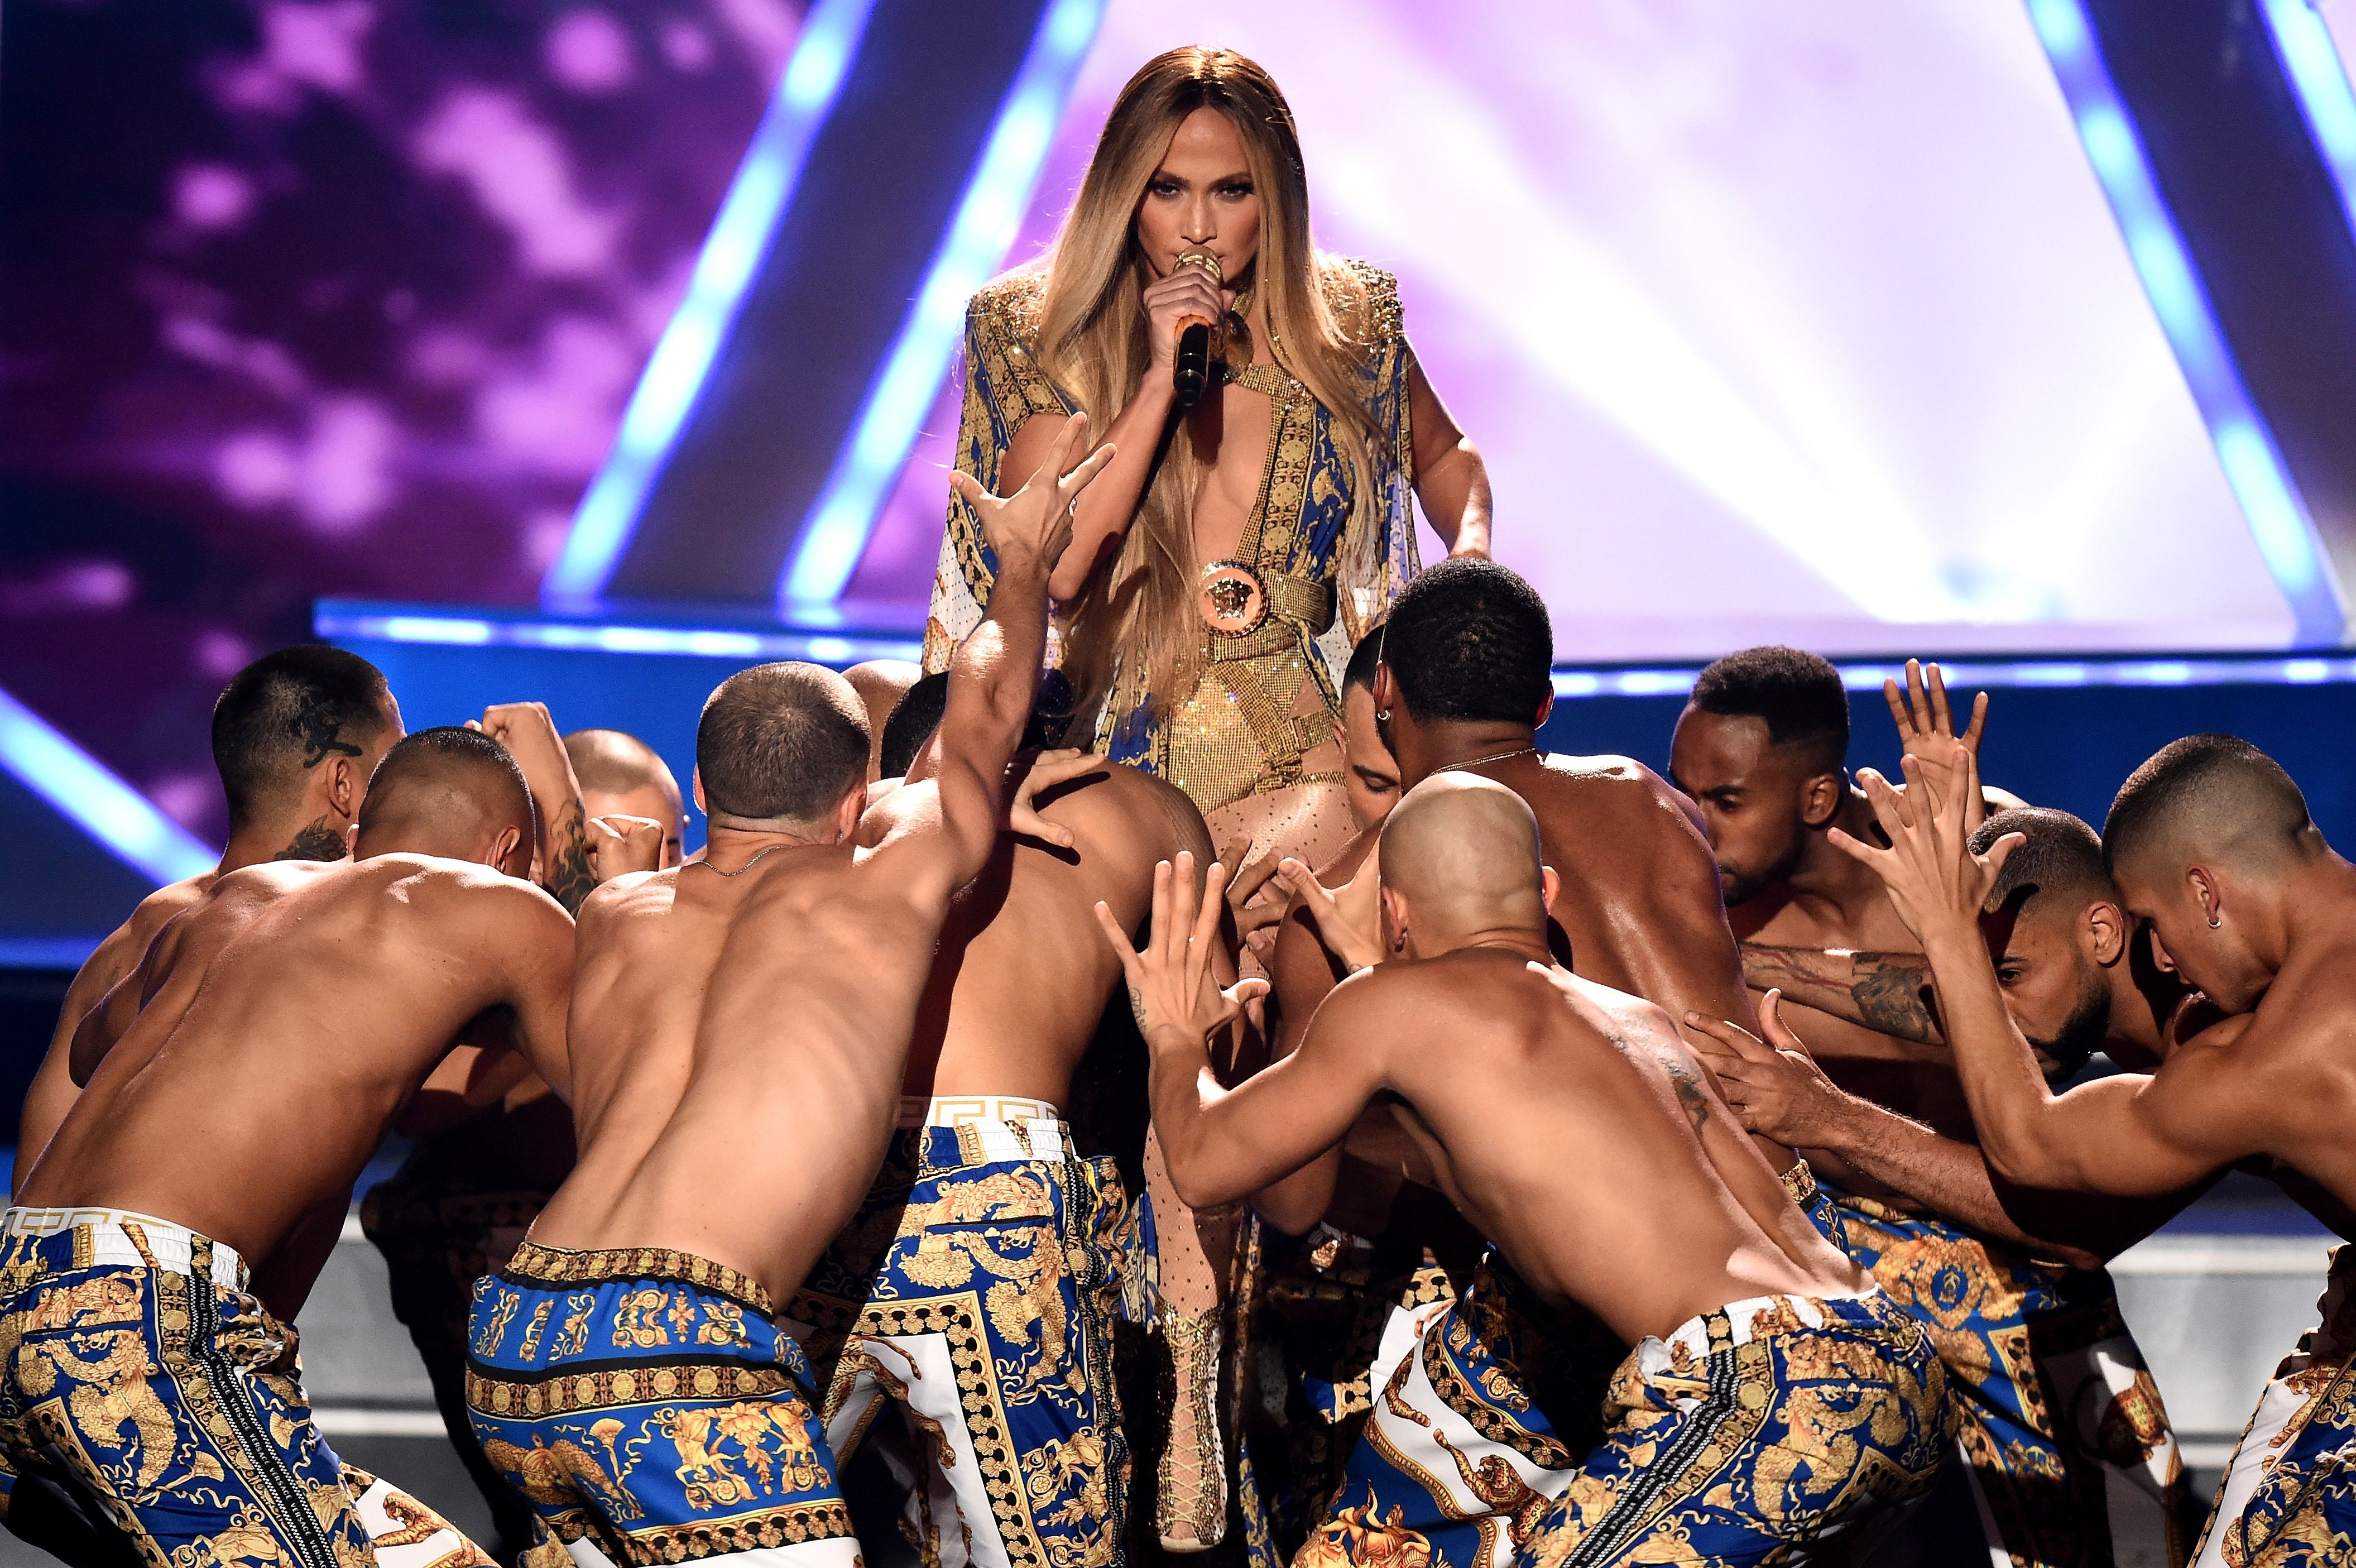 J. Lo Slayed At The VMAs—But I Can't Stop Looking At Her Body